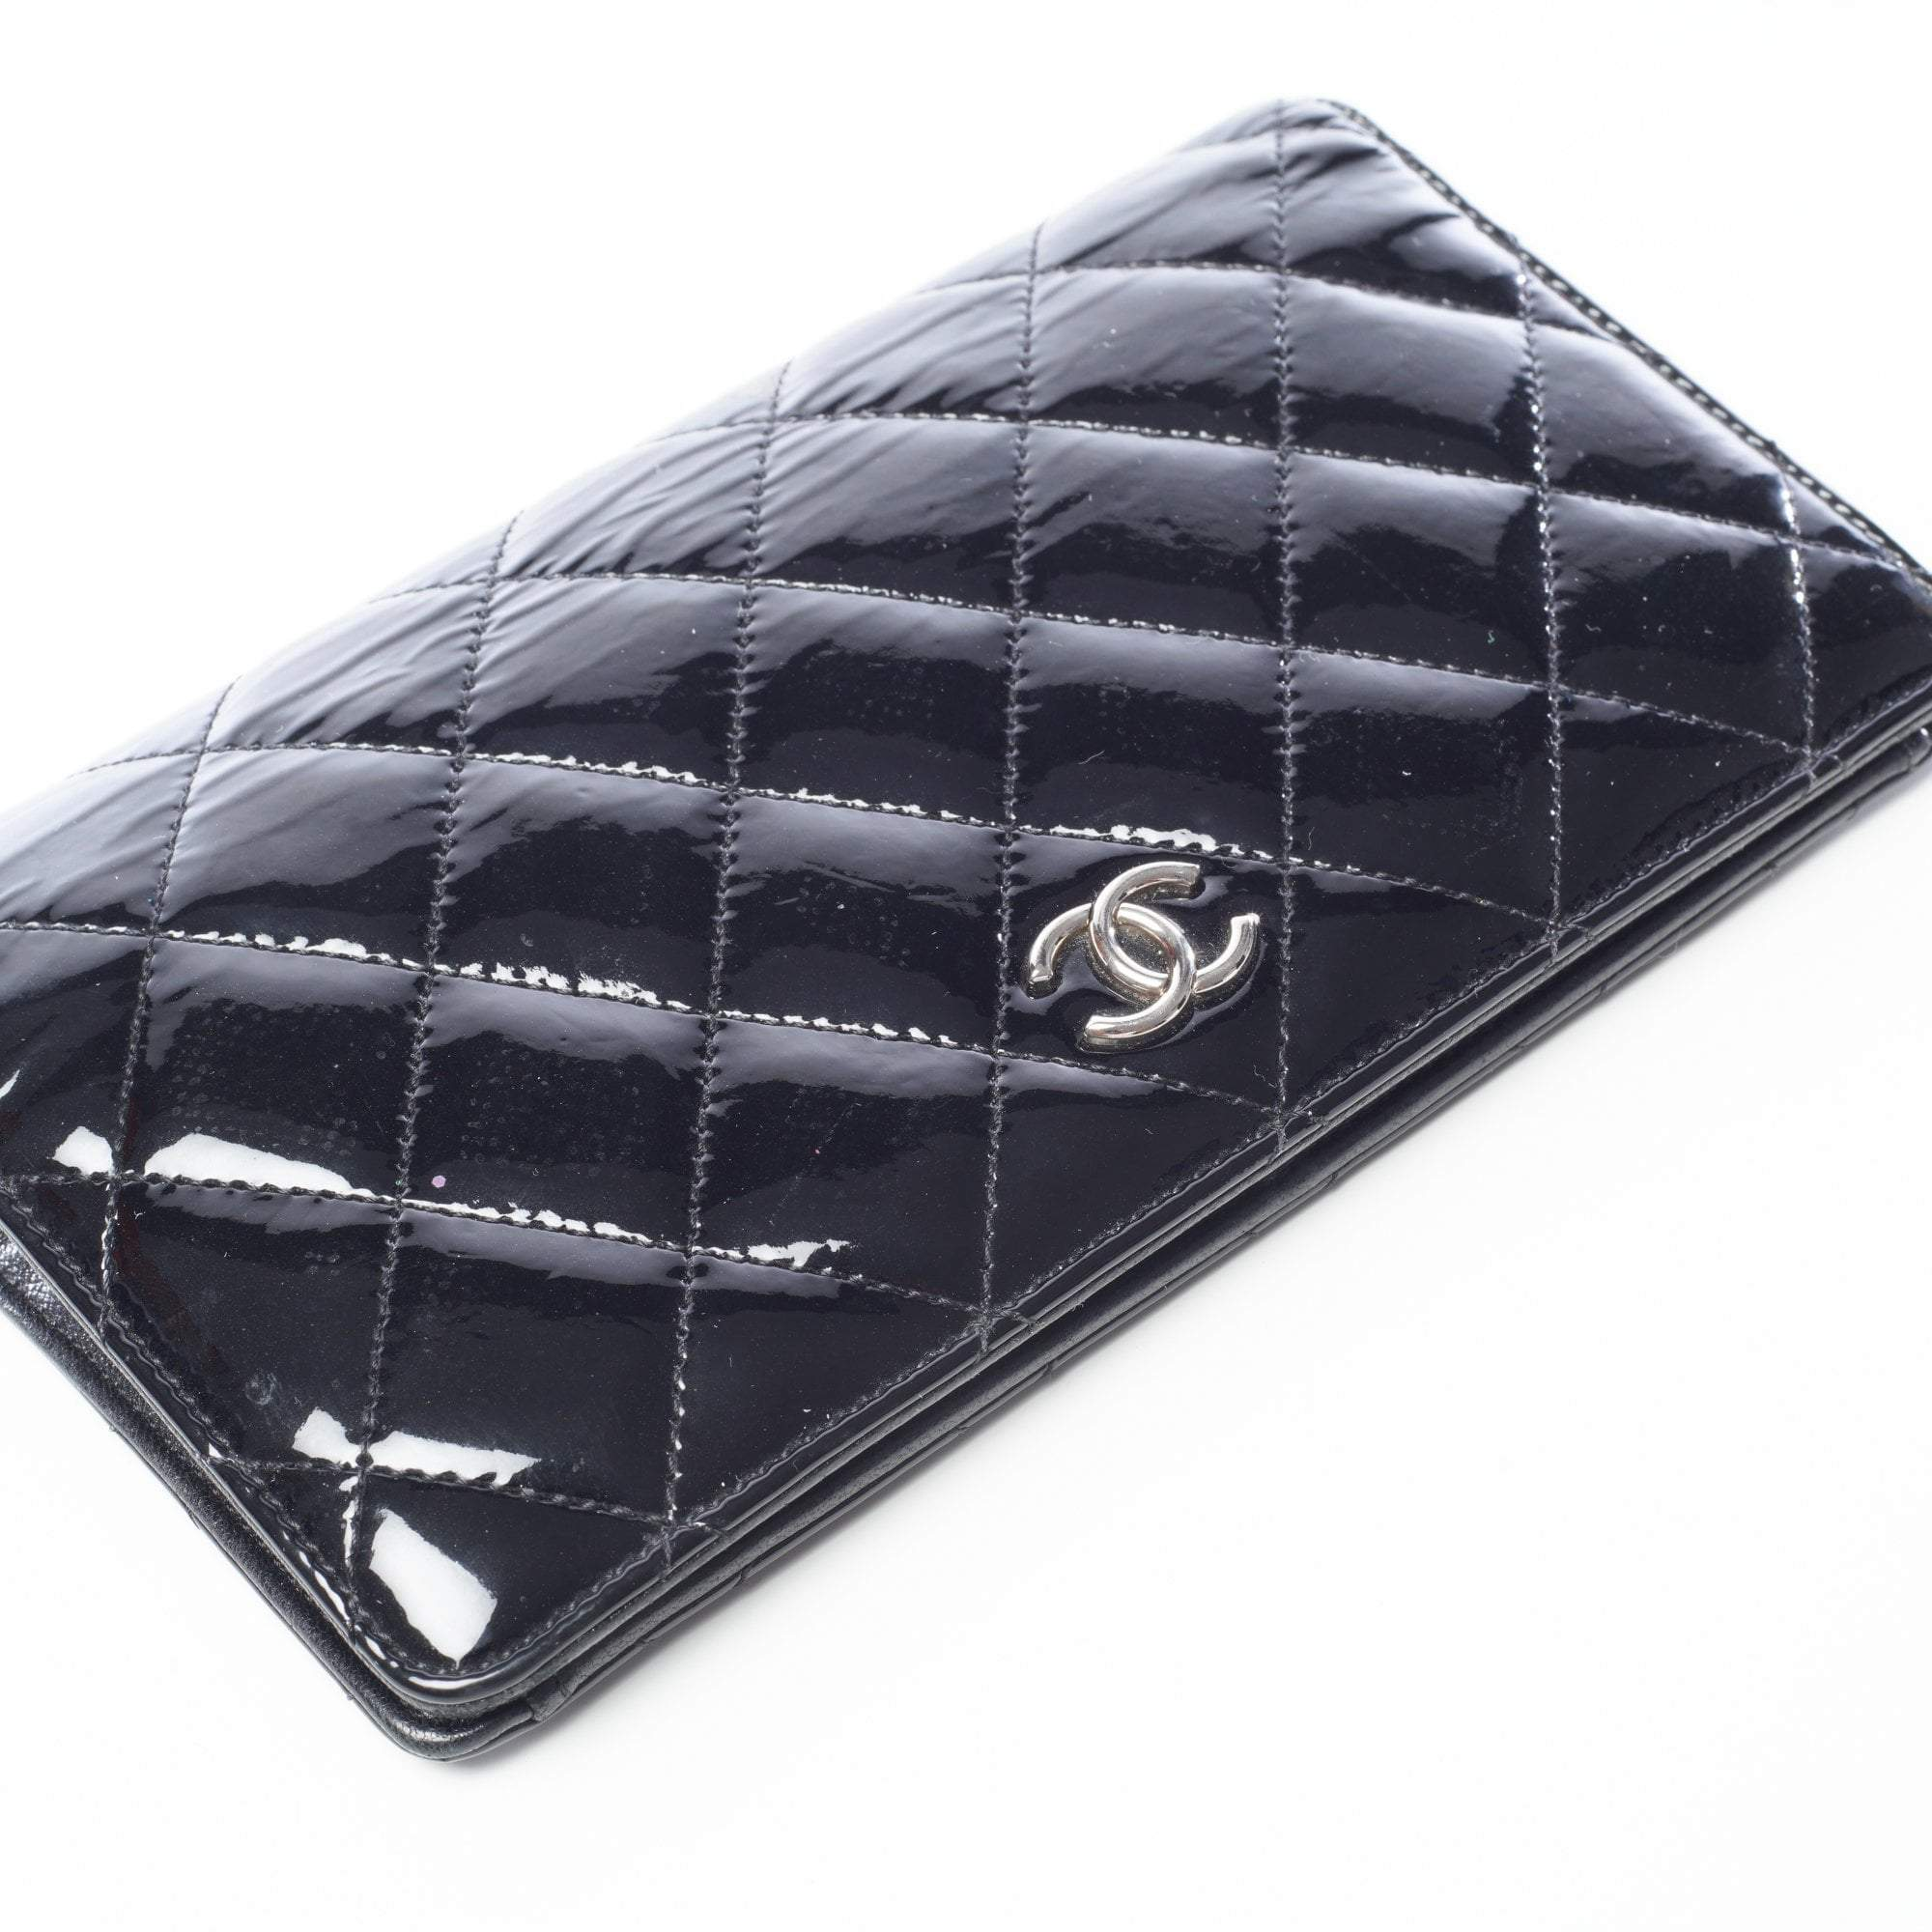 73e216854987 Chanel Black Quilted Patent Wallet – Garderobe